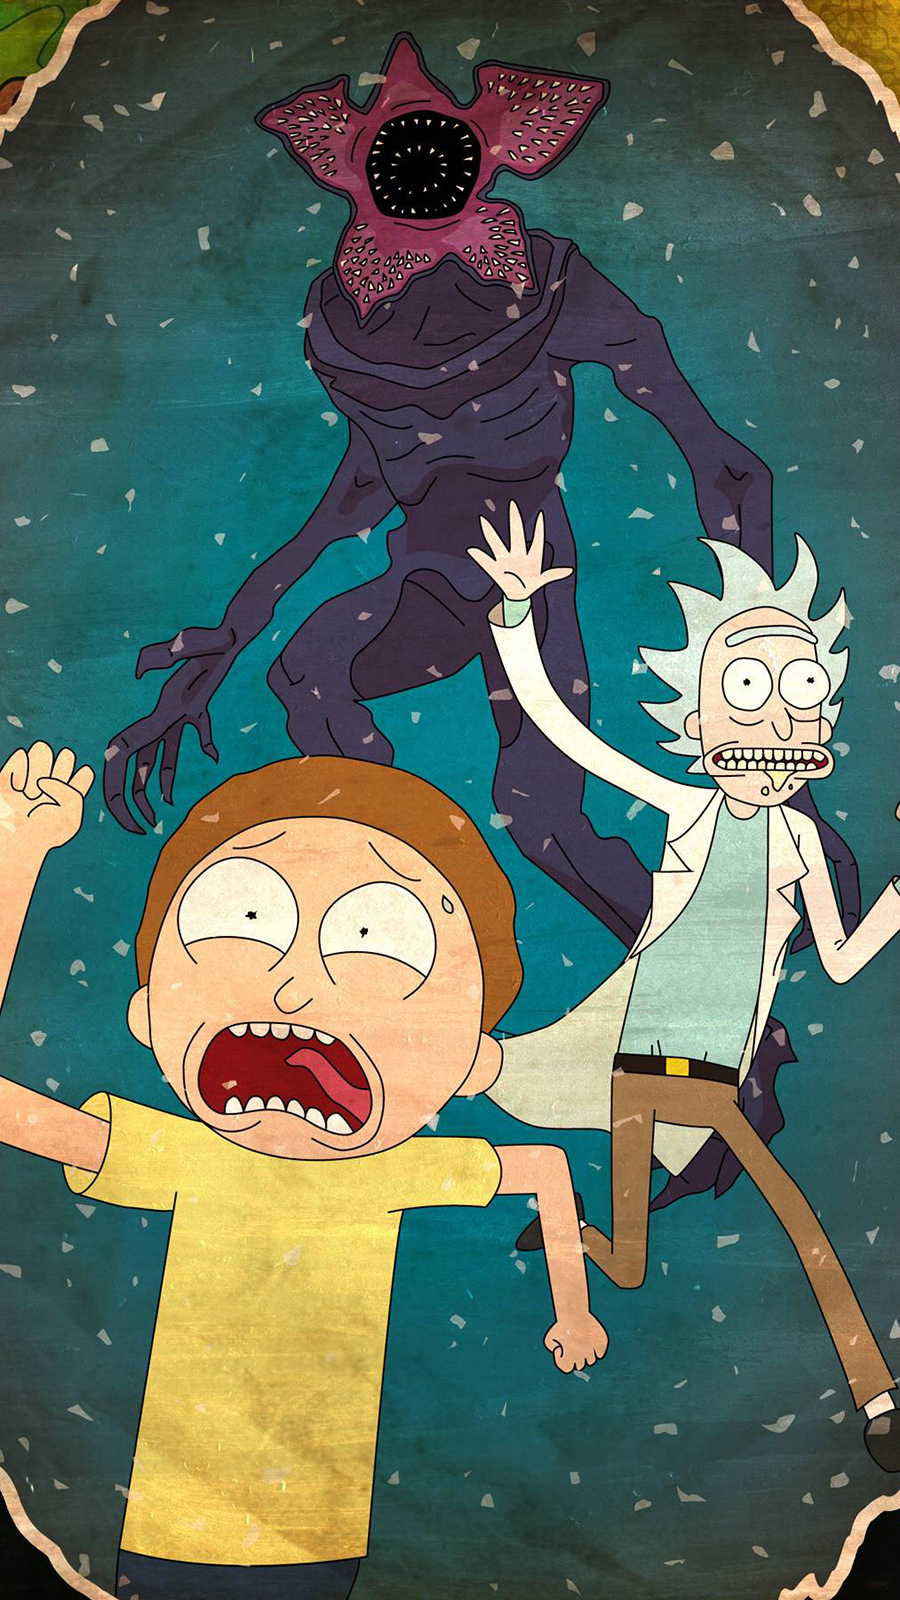 Rick and Morty Run Run Wallpapers Now Download For Your Device